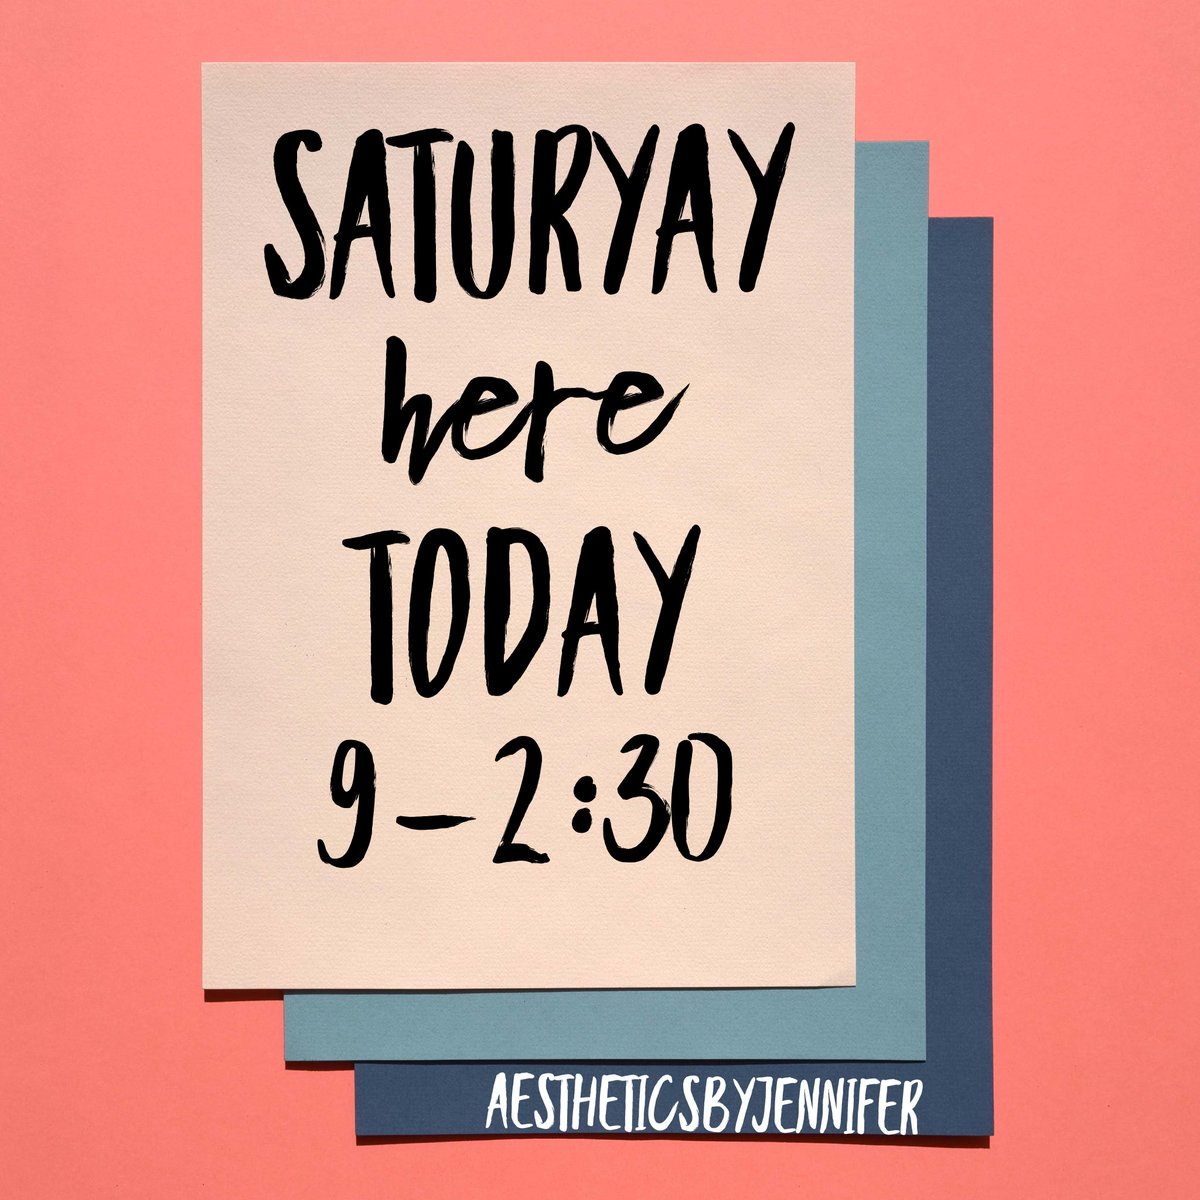 In two Saturdays a month! Plan ahead! Appointments go fast! #saturday #saturyay #facials #threading #waxing #skincare #smallbusiness #eyebrows #placentia #oc #girlboss #25yearsinthegame #24yearsinbusinesspic.twitter.com/A4Hf8SYFJj